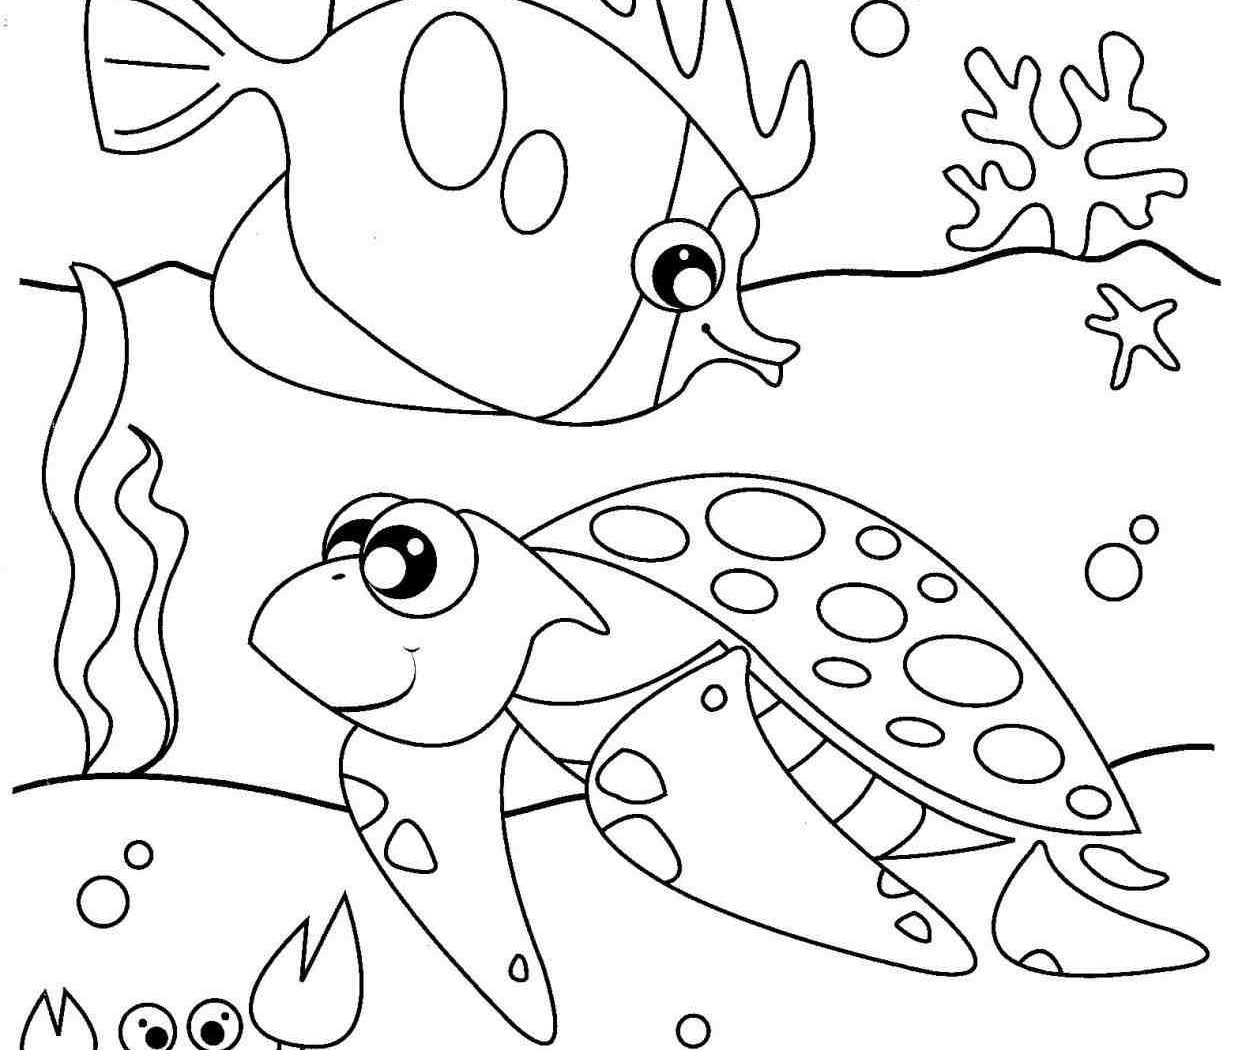 animal habitat coloring pages coloring pages ecosystem animals lovely special needs habitat coloring pages animal